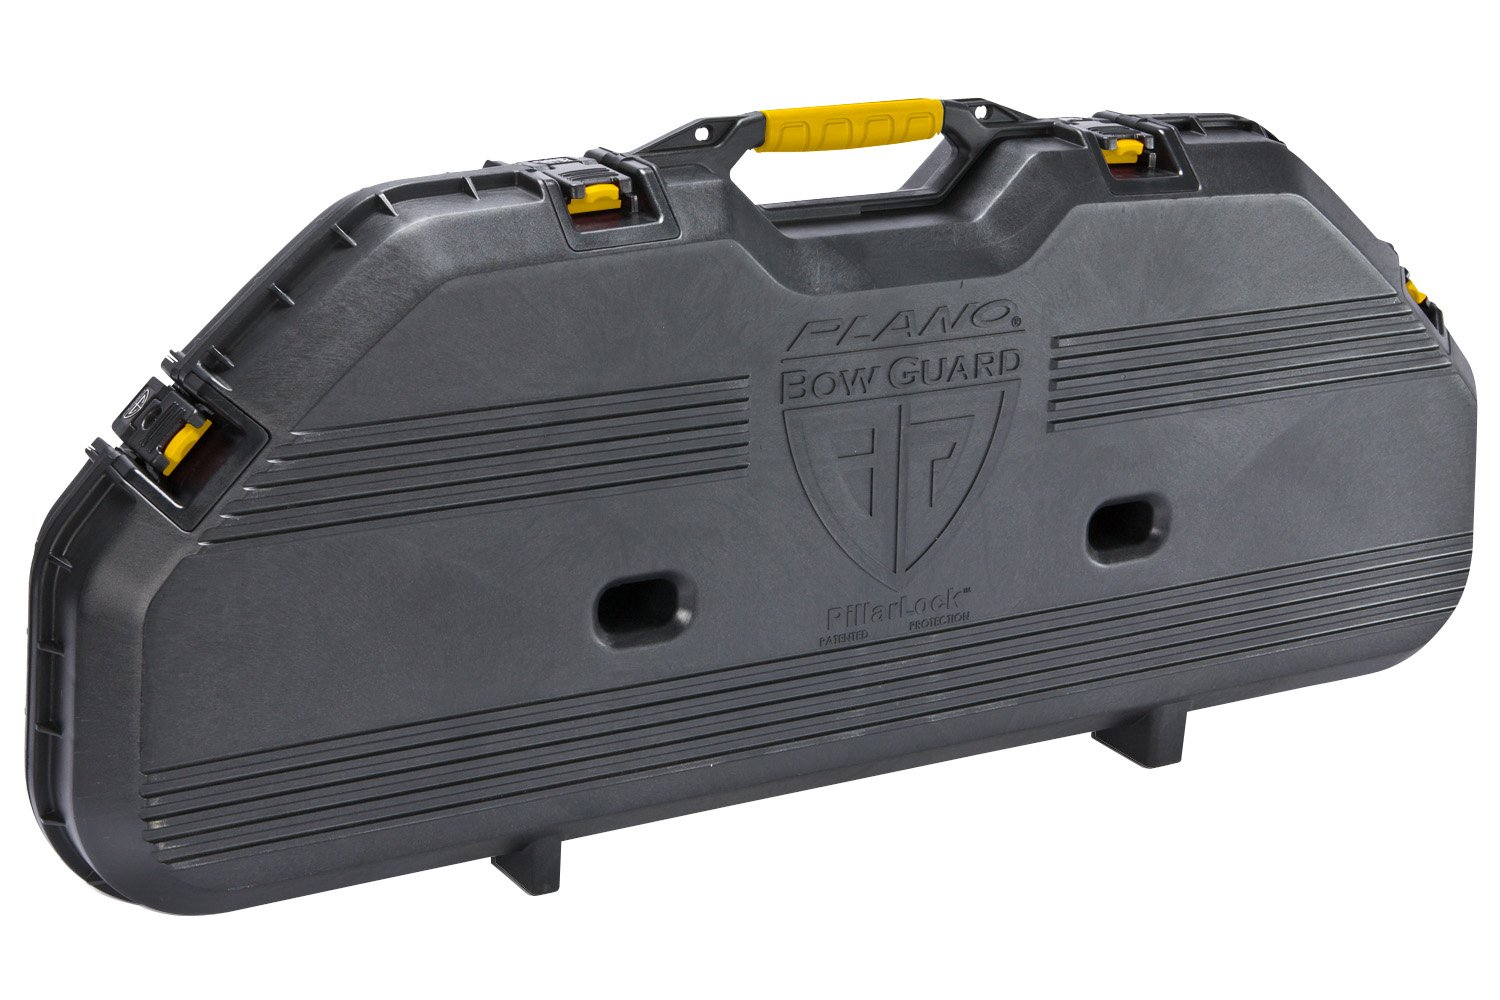 Plano 108115 AW Bow Case Black by Plano